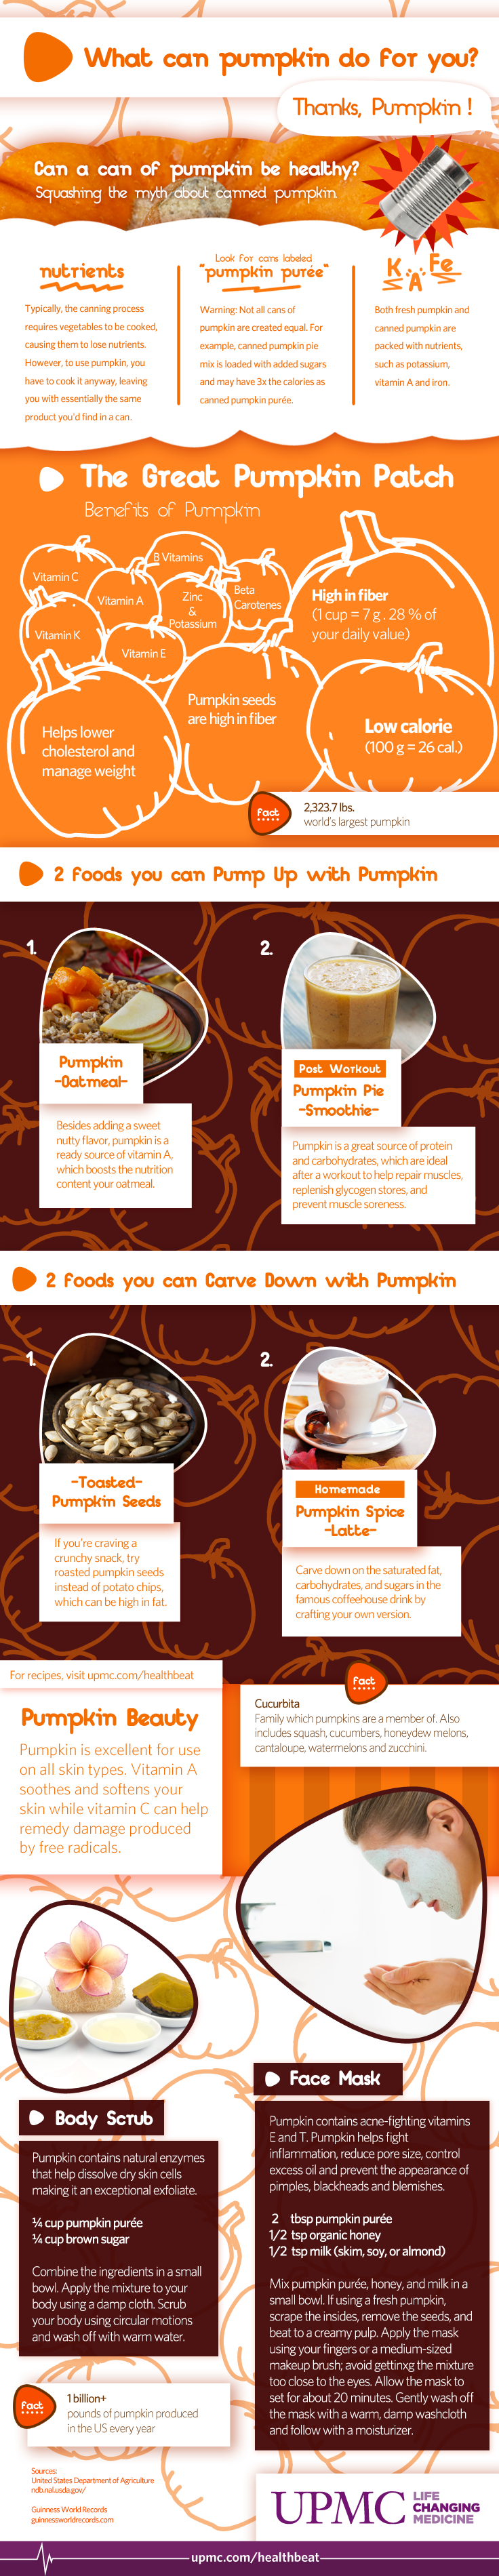 Discover the health benefits of pumpkin